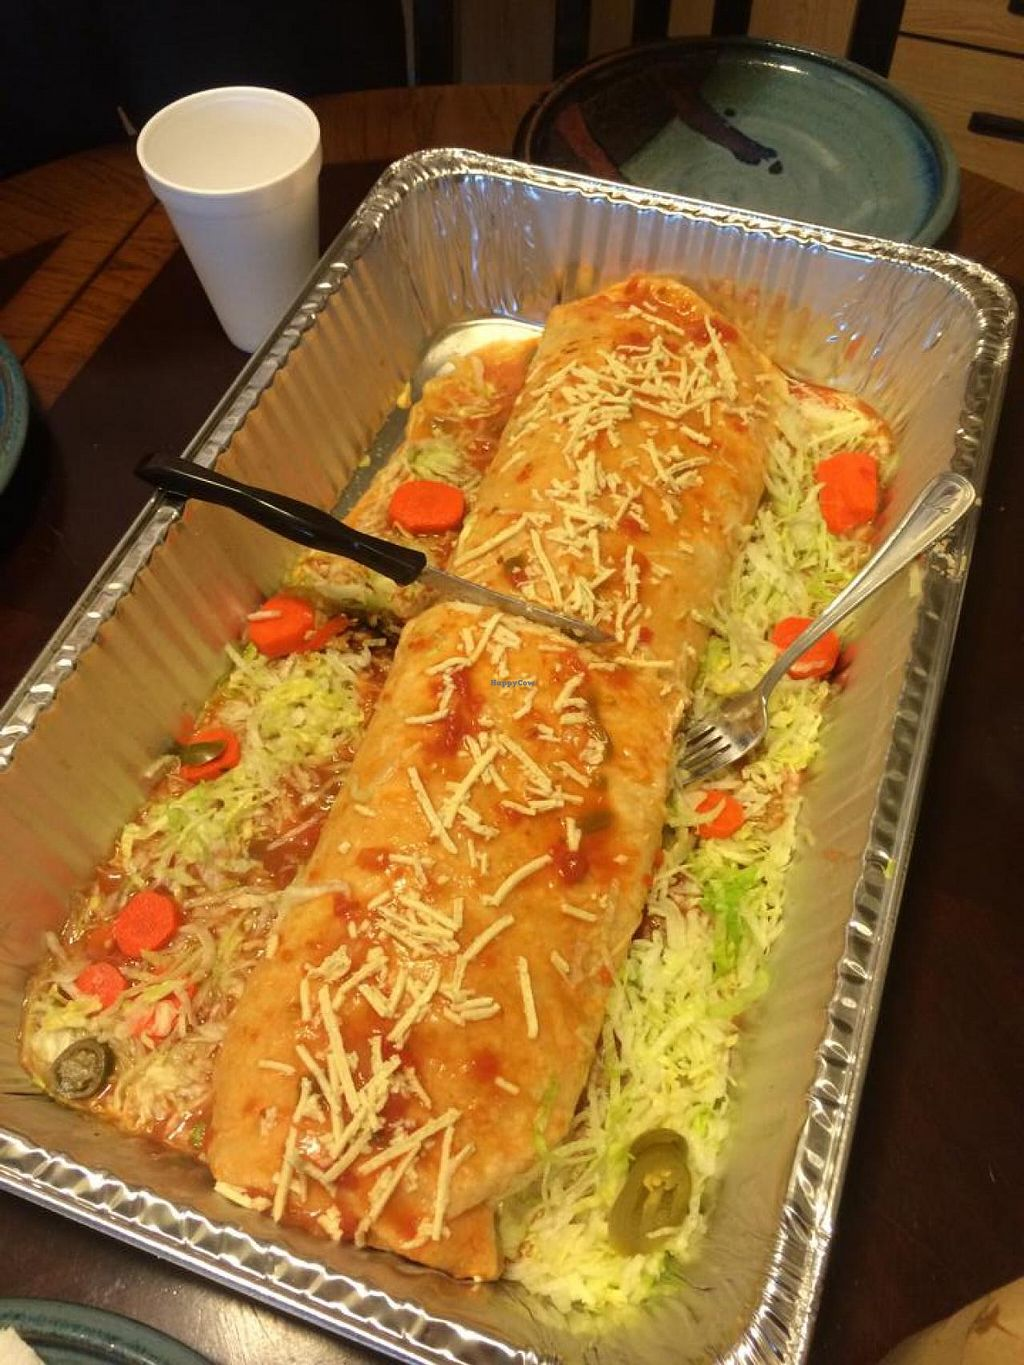 """Photo of CLOSED: El Azteca Mexican Taco Shop  by <a href=""""/members/profile/Meggie%20and%20Ben"""">Meggie and Ben</a> <br/>El Jefe burrito--made vegan! Enough to feed a whole party of people! <br/> August 16, 2014  - <a href='/contact/abuse/image/30687/77205'>Report</a>"""